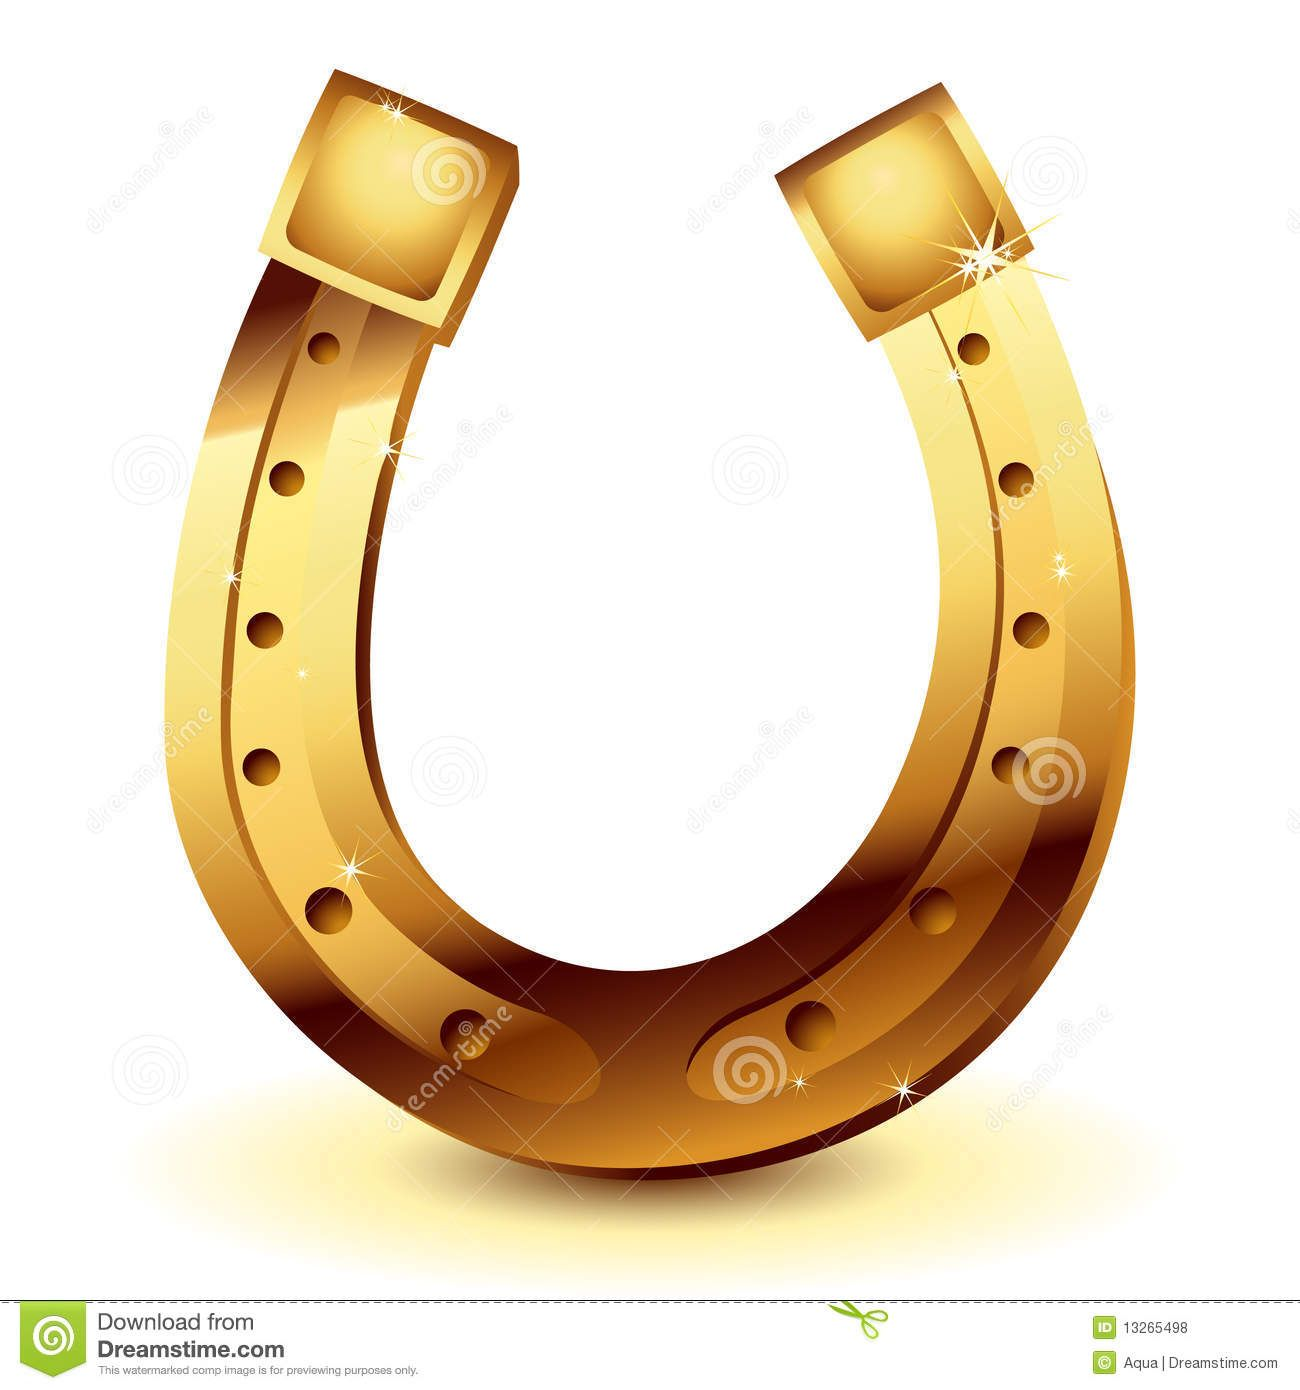 Gold Horseshoe This Illustration May Be Use As Designer Work Sponsored Advertisement Ad Horseshoe Designer Illustration Horseshoe Photo Gold Gold